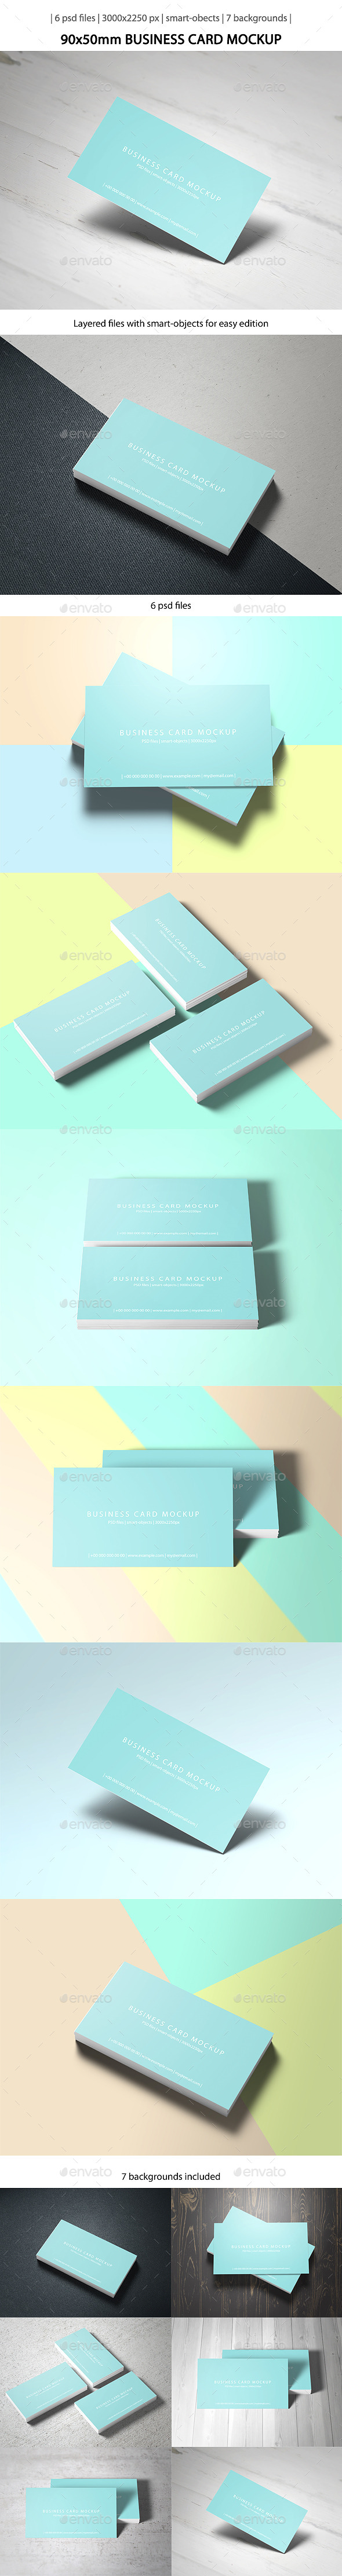 GraphicRiver 90x50 Business Card Mockup 10305270